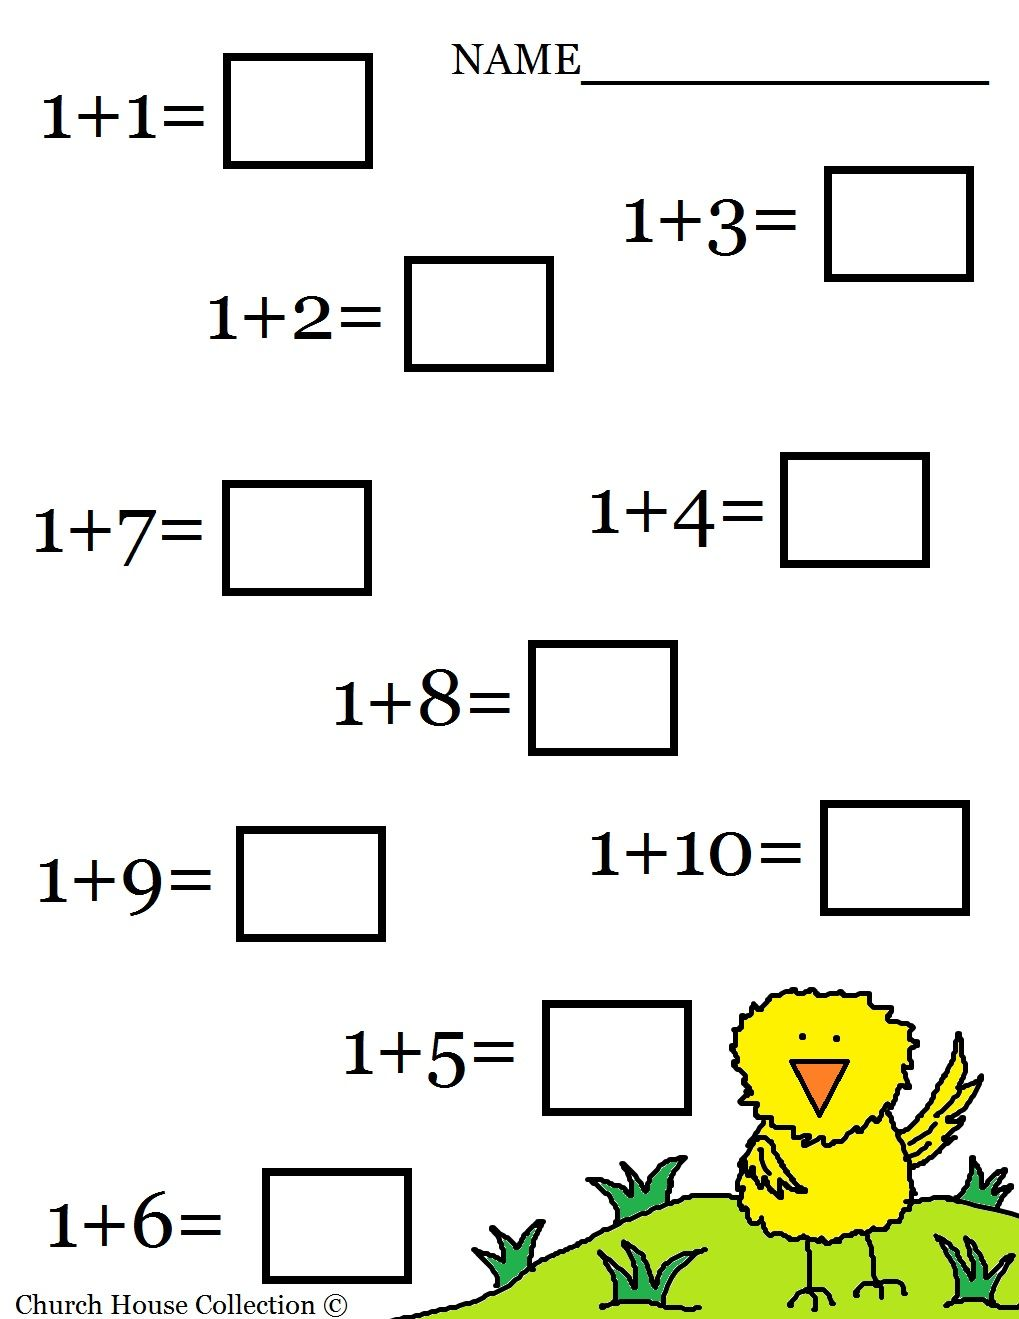 Proatmealus  Winning  Images About Worksheets  Math On Pinterest  Math Sheets  With Fair  Images About Worksheets  Math On Pinterest  Math Sheets Math Worksheets For Kindergarten And Simple Addition With Charming Math Worksheet For First Grade Also Middle Ages Worksheet In Addition The Letter B Worksheets And Rounding Worksheets For Rd Grade As Well As Reading And Math Worksheets Additionally Blank Check Worksheet From Pinterestcom With Proatmealus  Fair  Images About Worksheets  Math On Pinterest  Math Sheets  With Charming  Images About Worksheets  Math On Pinterest  Math Sheets Math Worksheets For Kindergarten And Simple Addition And Winning Math Worksheet For First Grade Also Middle Ages Worksheet In Addition The Letter B Worksheets From Pinterestcom